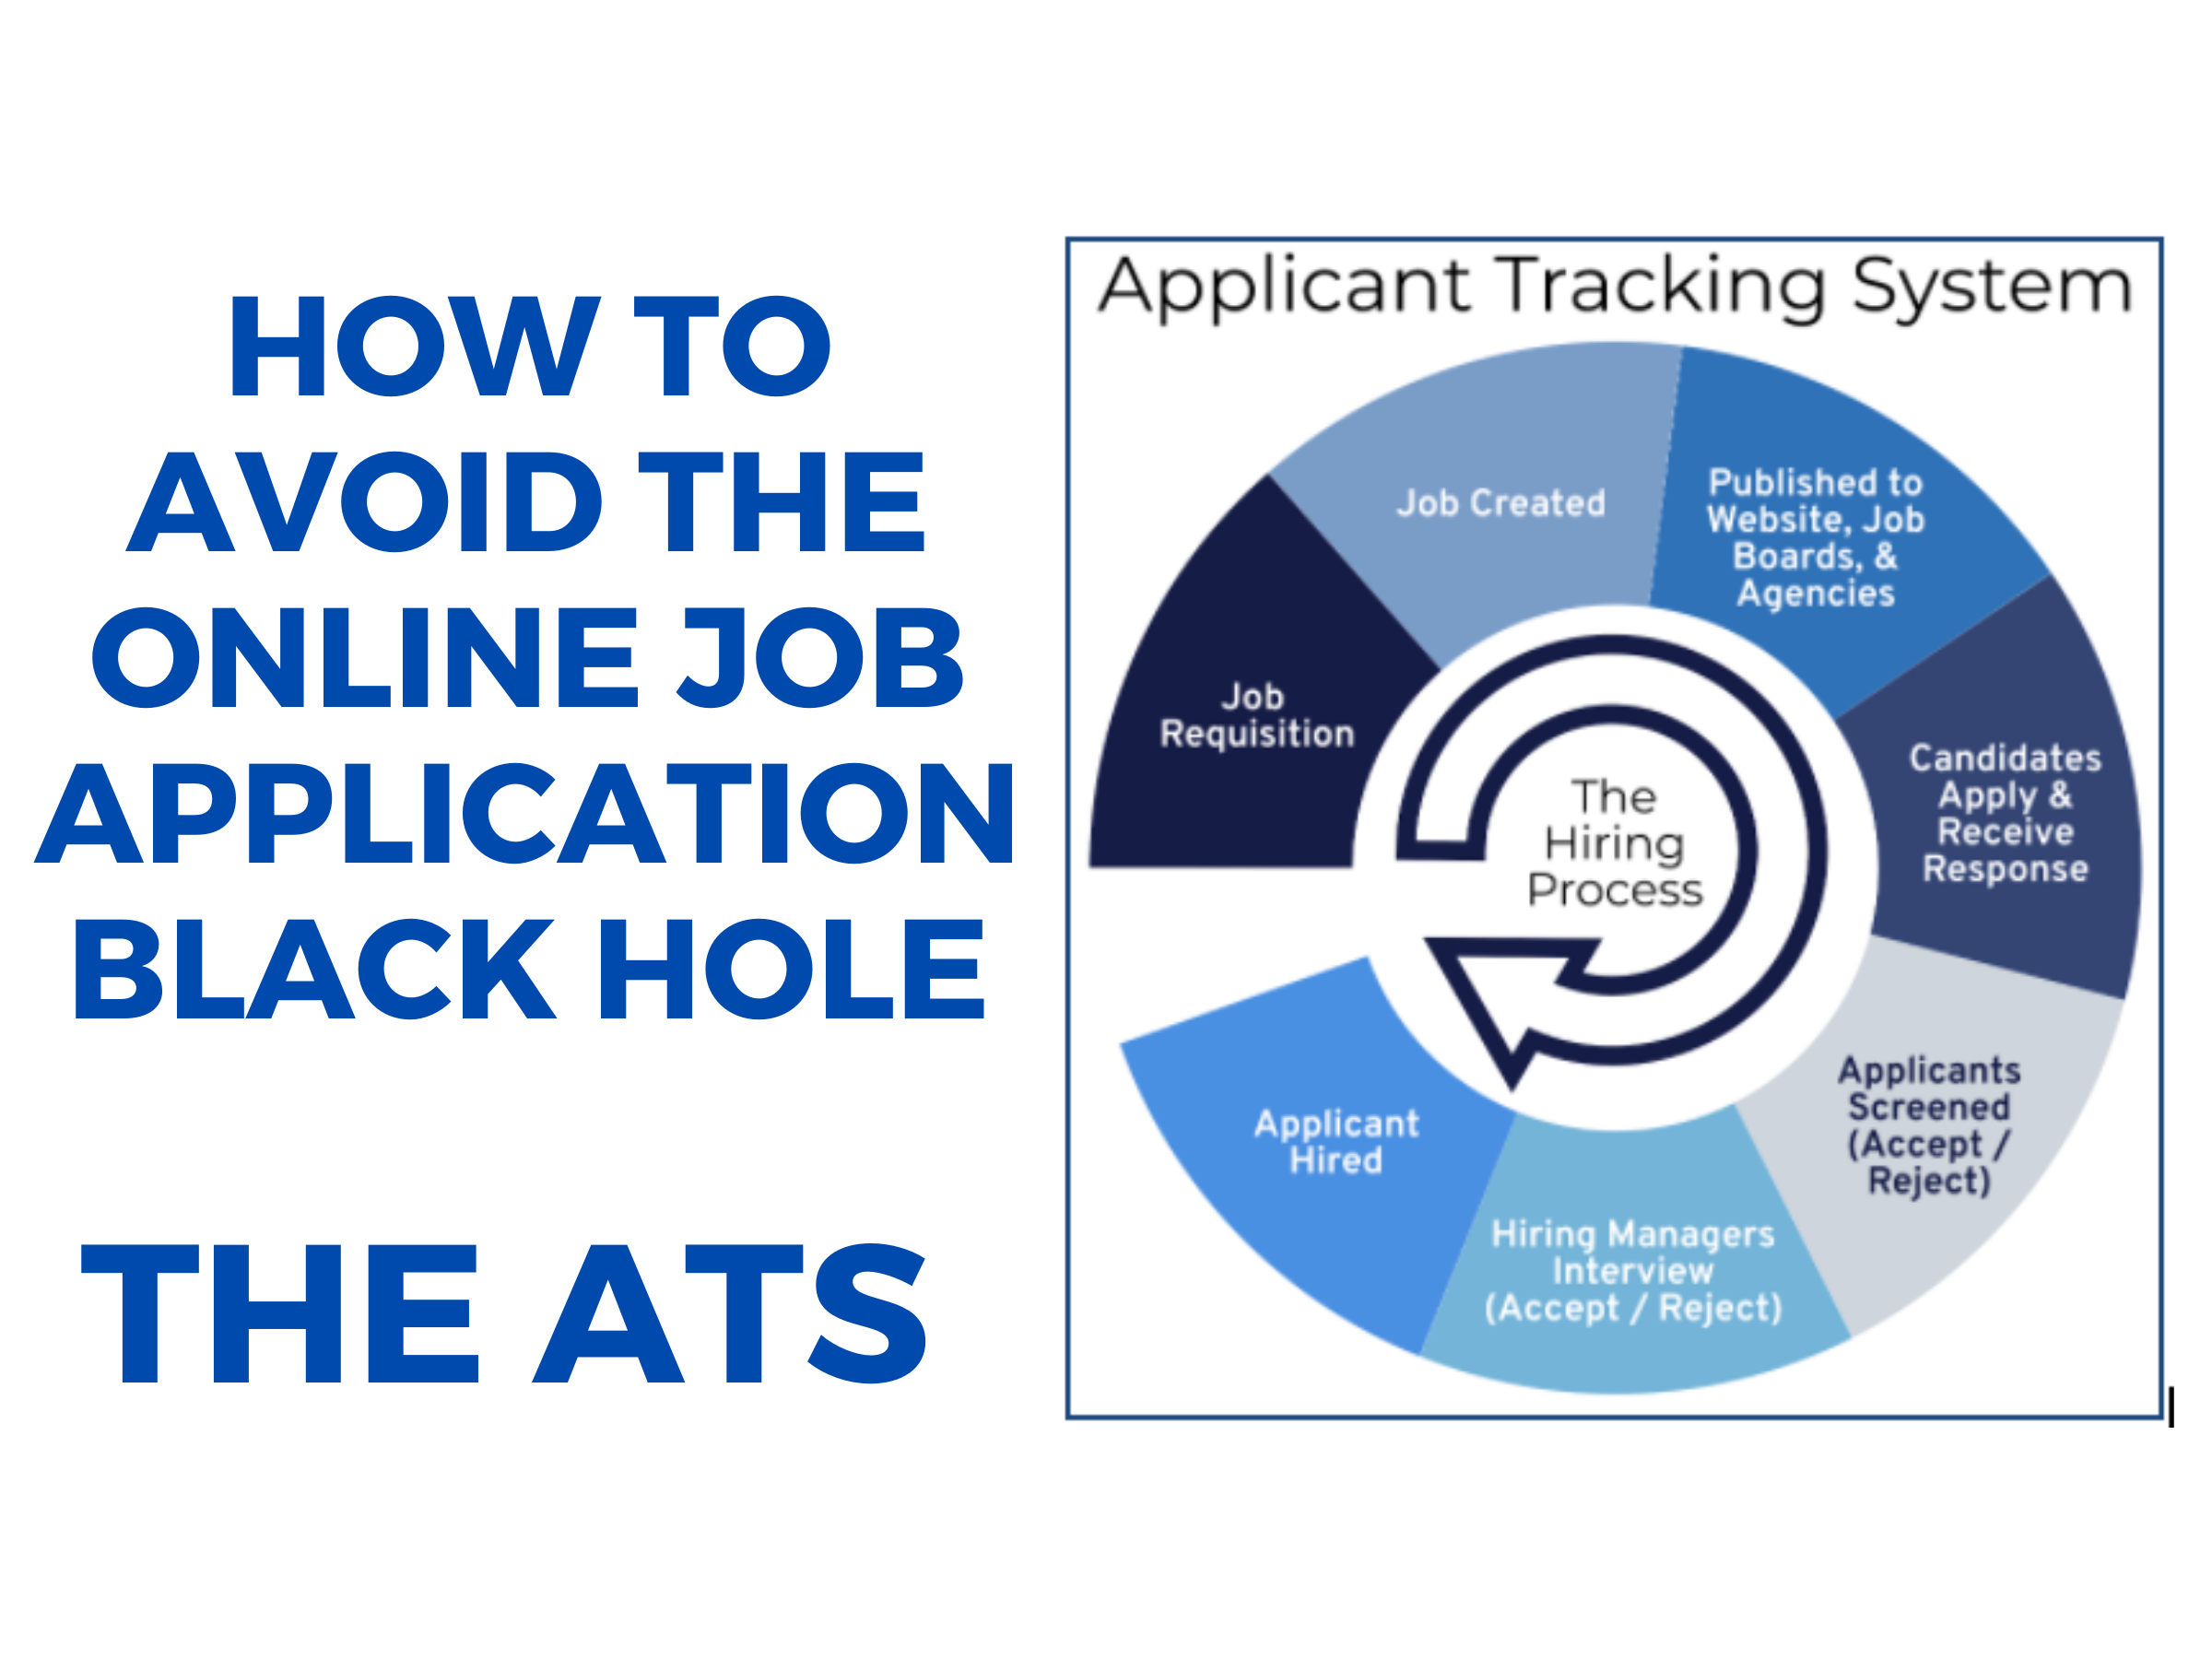 19 Tips to Avoid the Online Job Application Black Hole